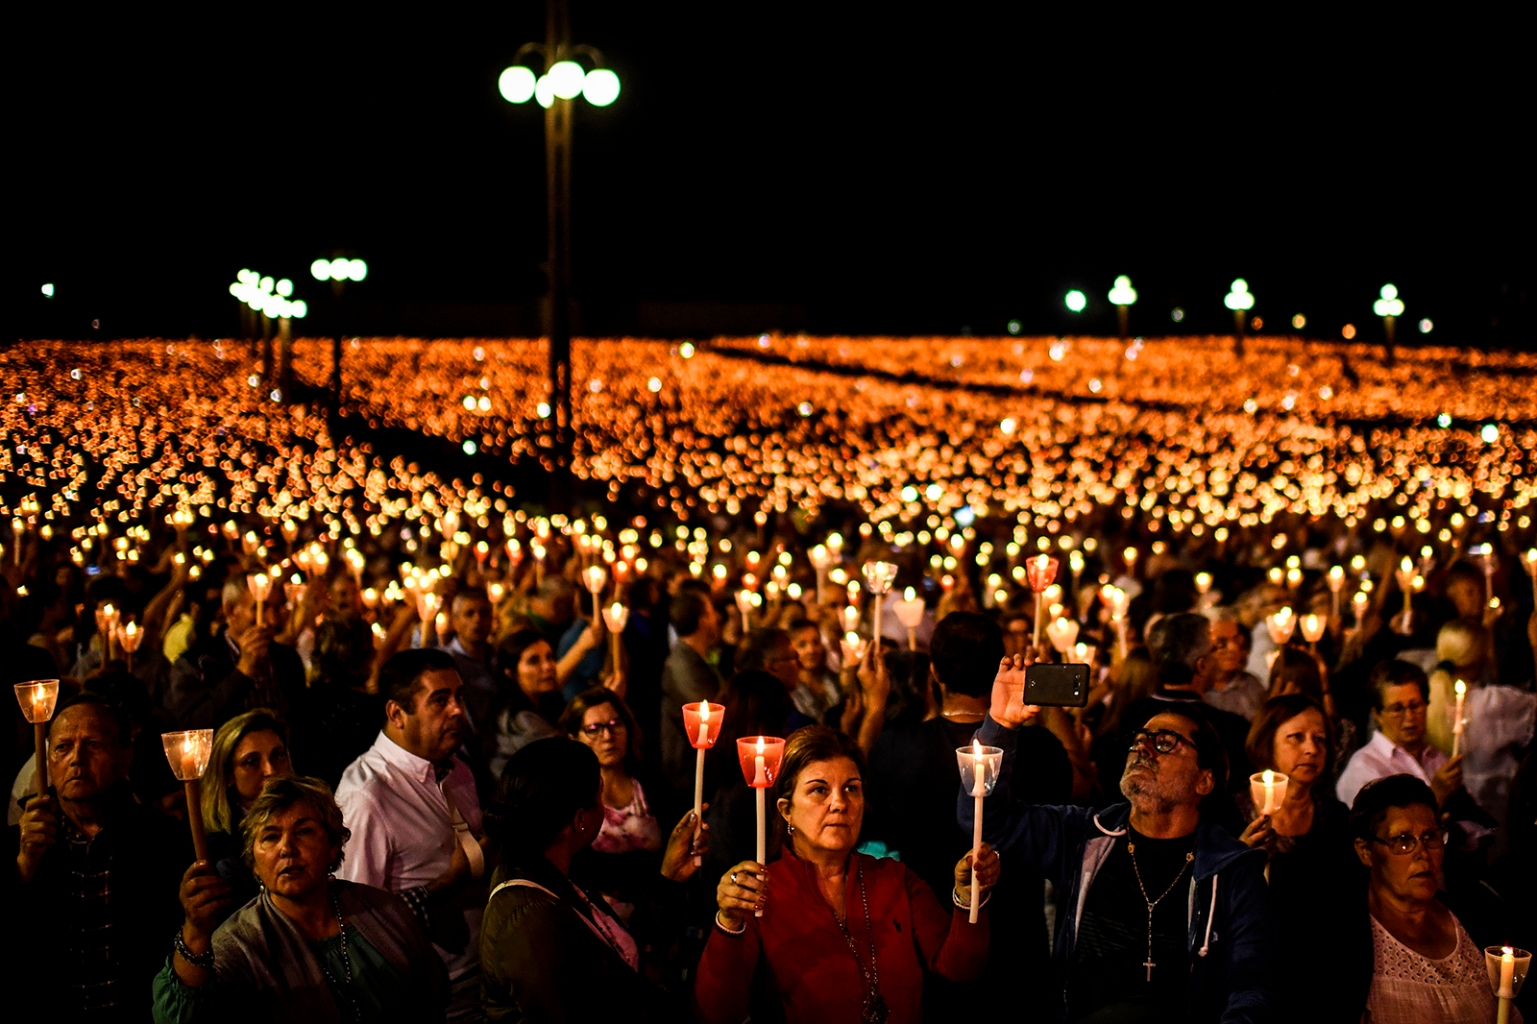 Pilgrims hold candles as they pray during the candle procession at the Fatima shrine in Fatima, central Portugal, on May 12. Thousands of pilgrims converged on the shrine to celebrate the anniversary of Fatima's miracle when three shepherd children claimed to have seen the Virgin Mary in May 1917. PATRICIA DE MELO MOREIRA/AFP/Getty Images